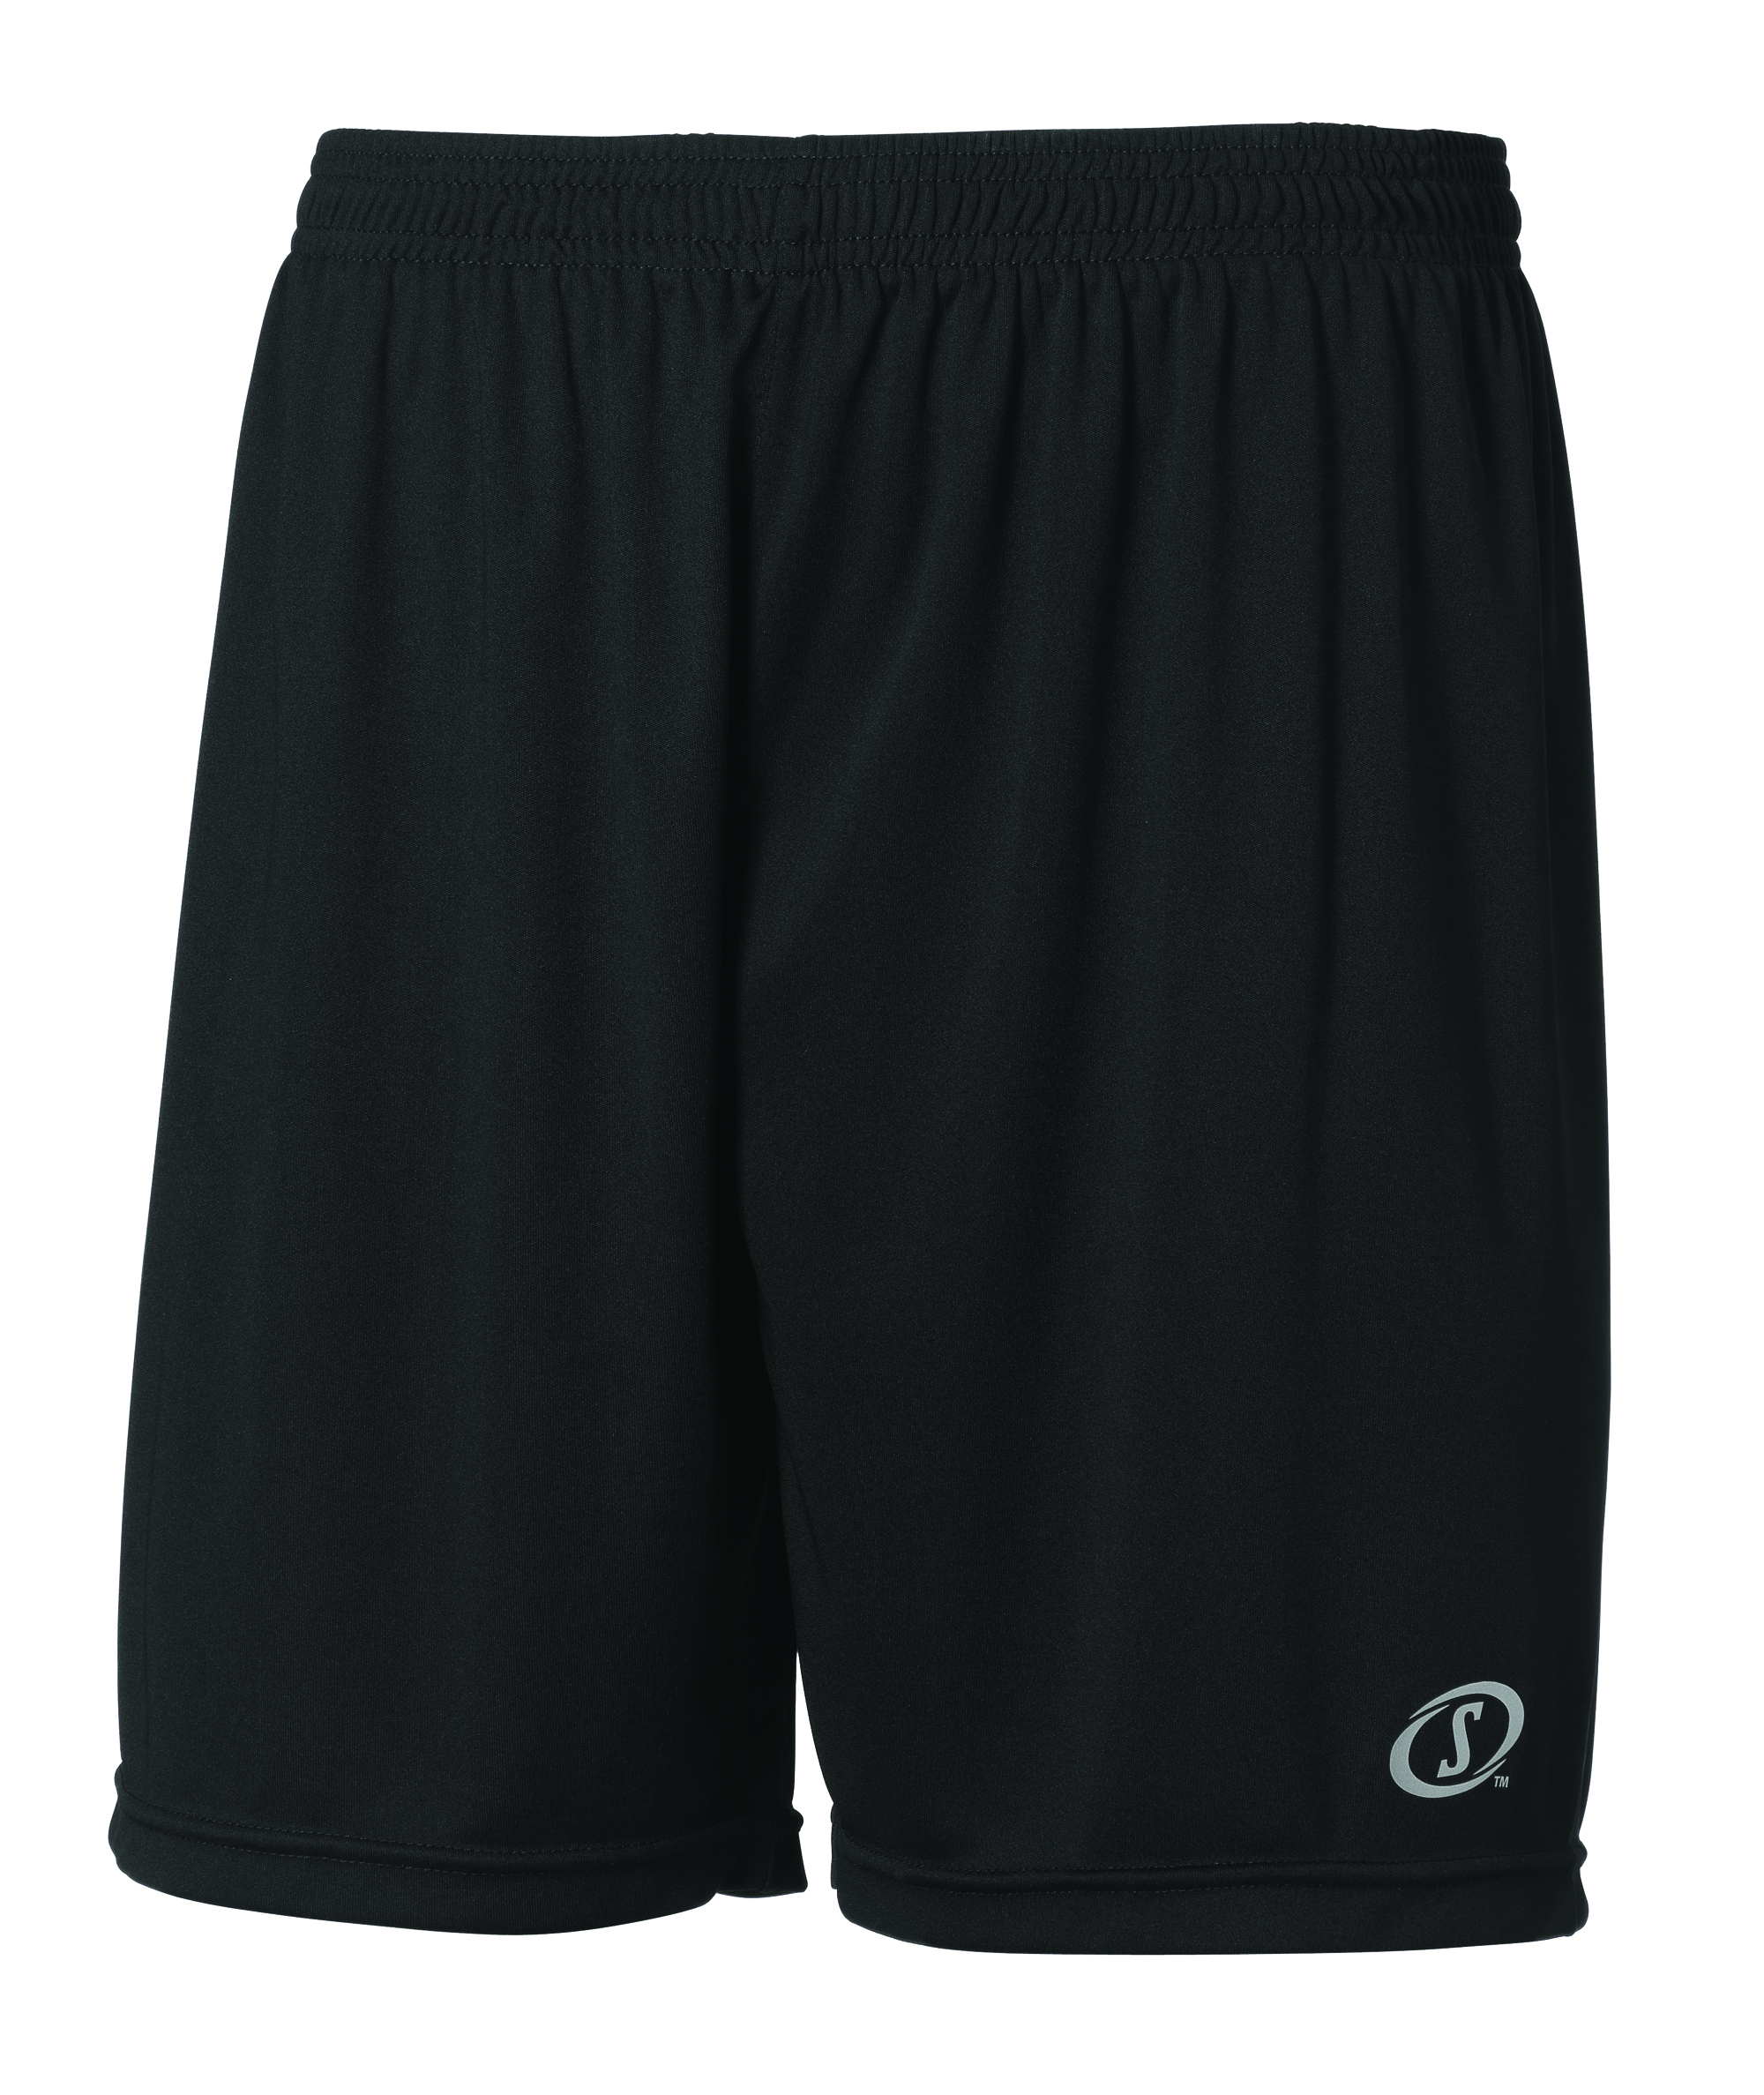 Core Training Shorts - Black - XXL